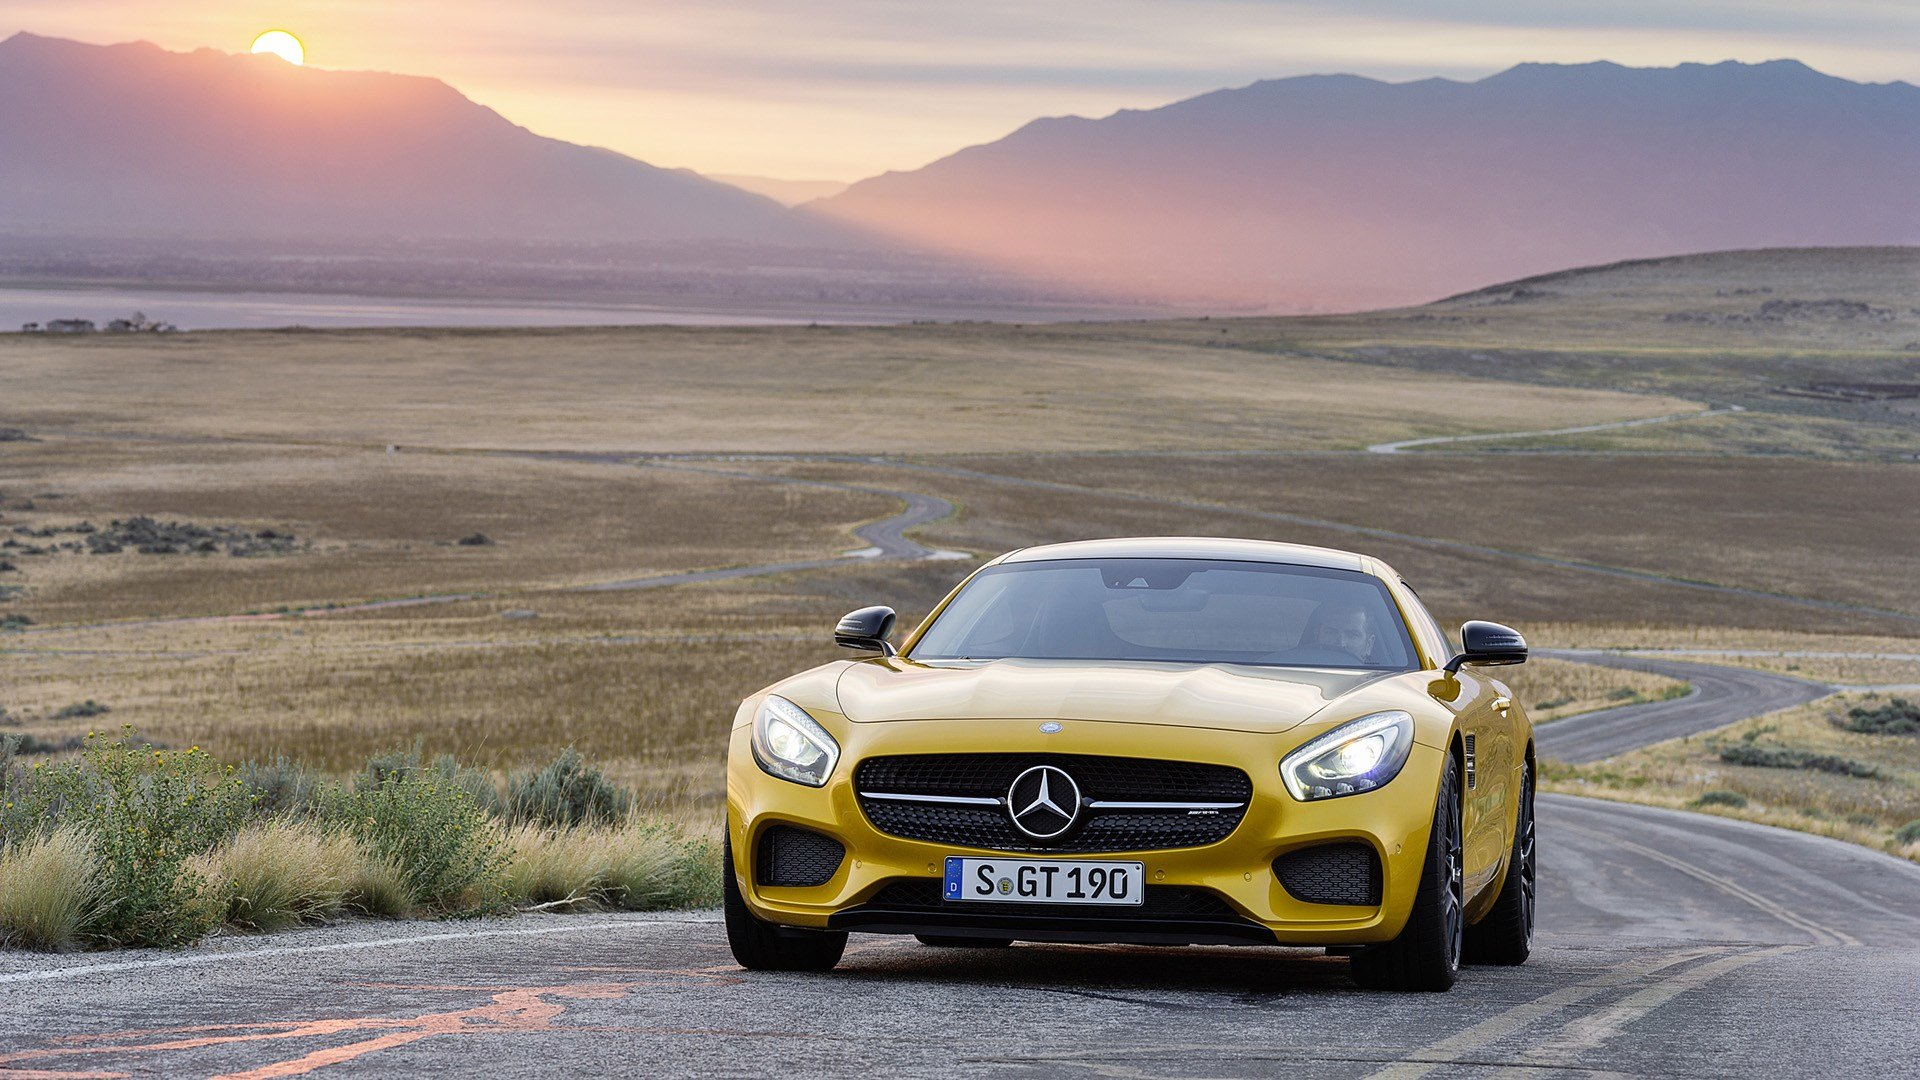 Latest 2016 Mercedes Amg Gt S Wallpapers Hd Images Wsupercars Free Download